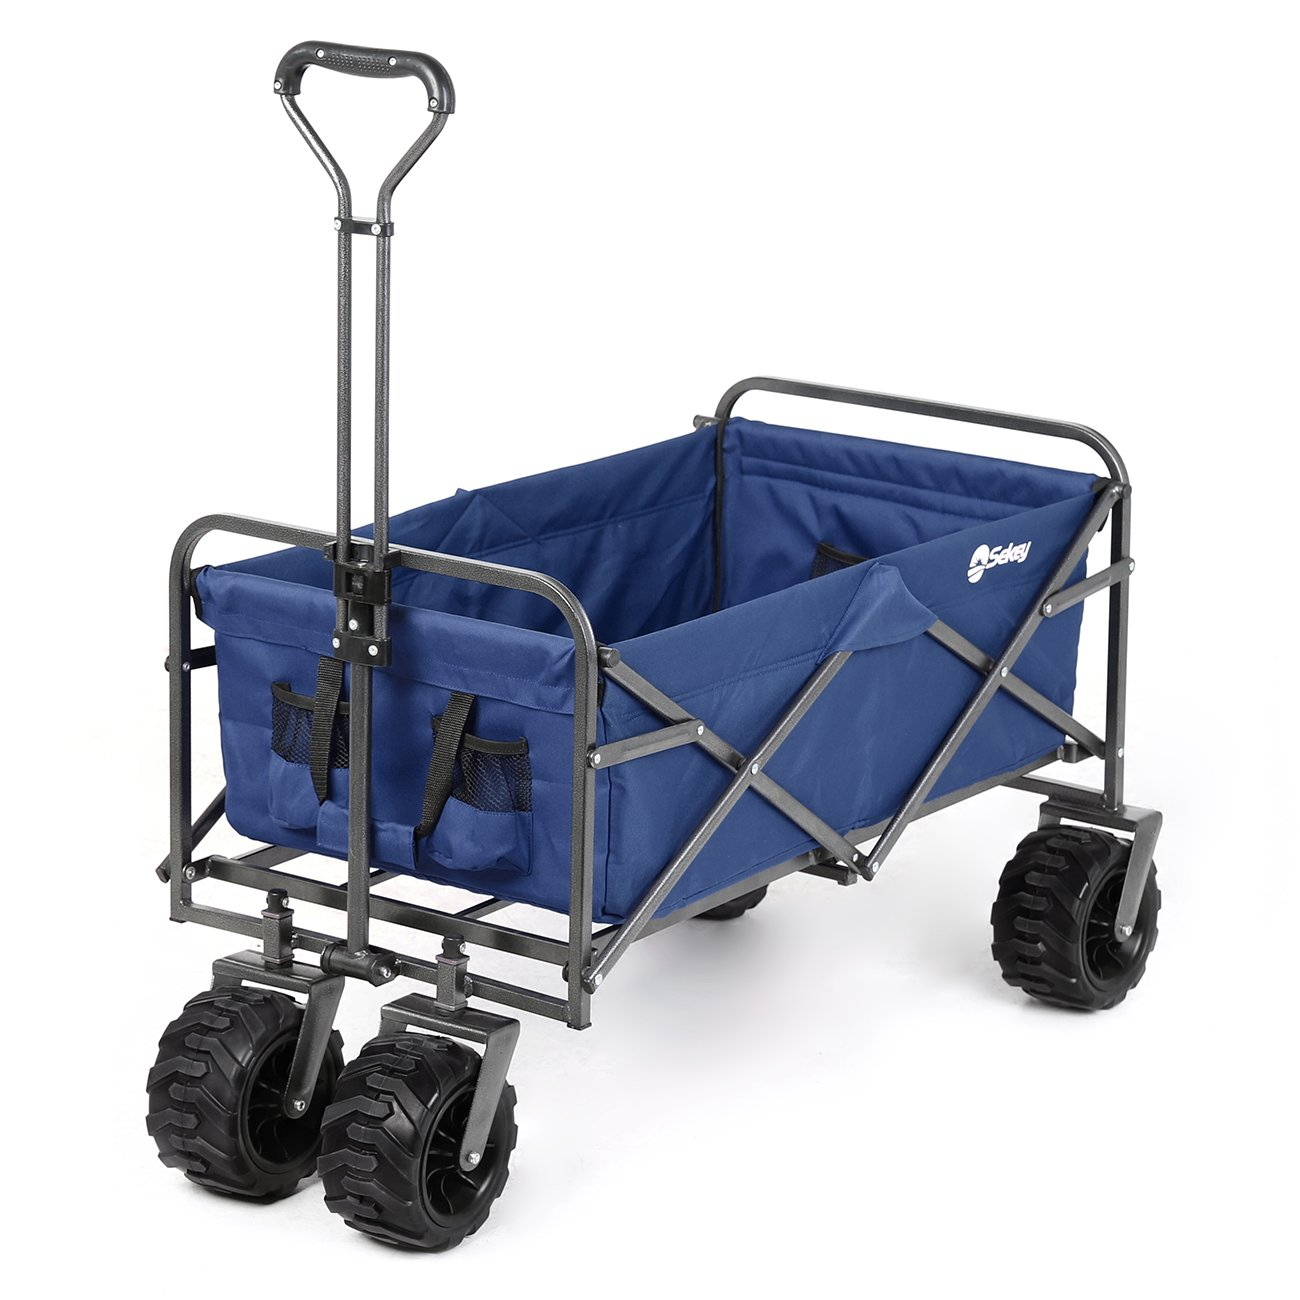 Sekey Folding Wagon Cart Collapsible Outdoor Utility Wagon Heavy Duty Beach Wagon with All-Terrain Wheels, 265 Pound Capacity, Blue by Sekey